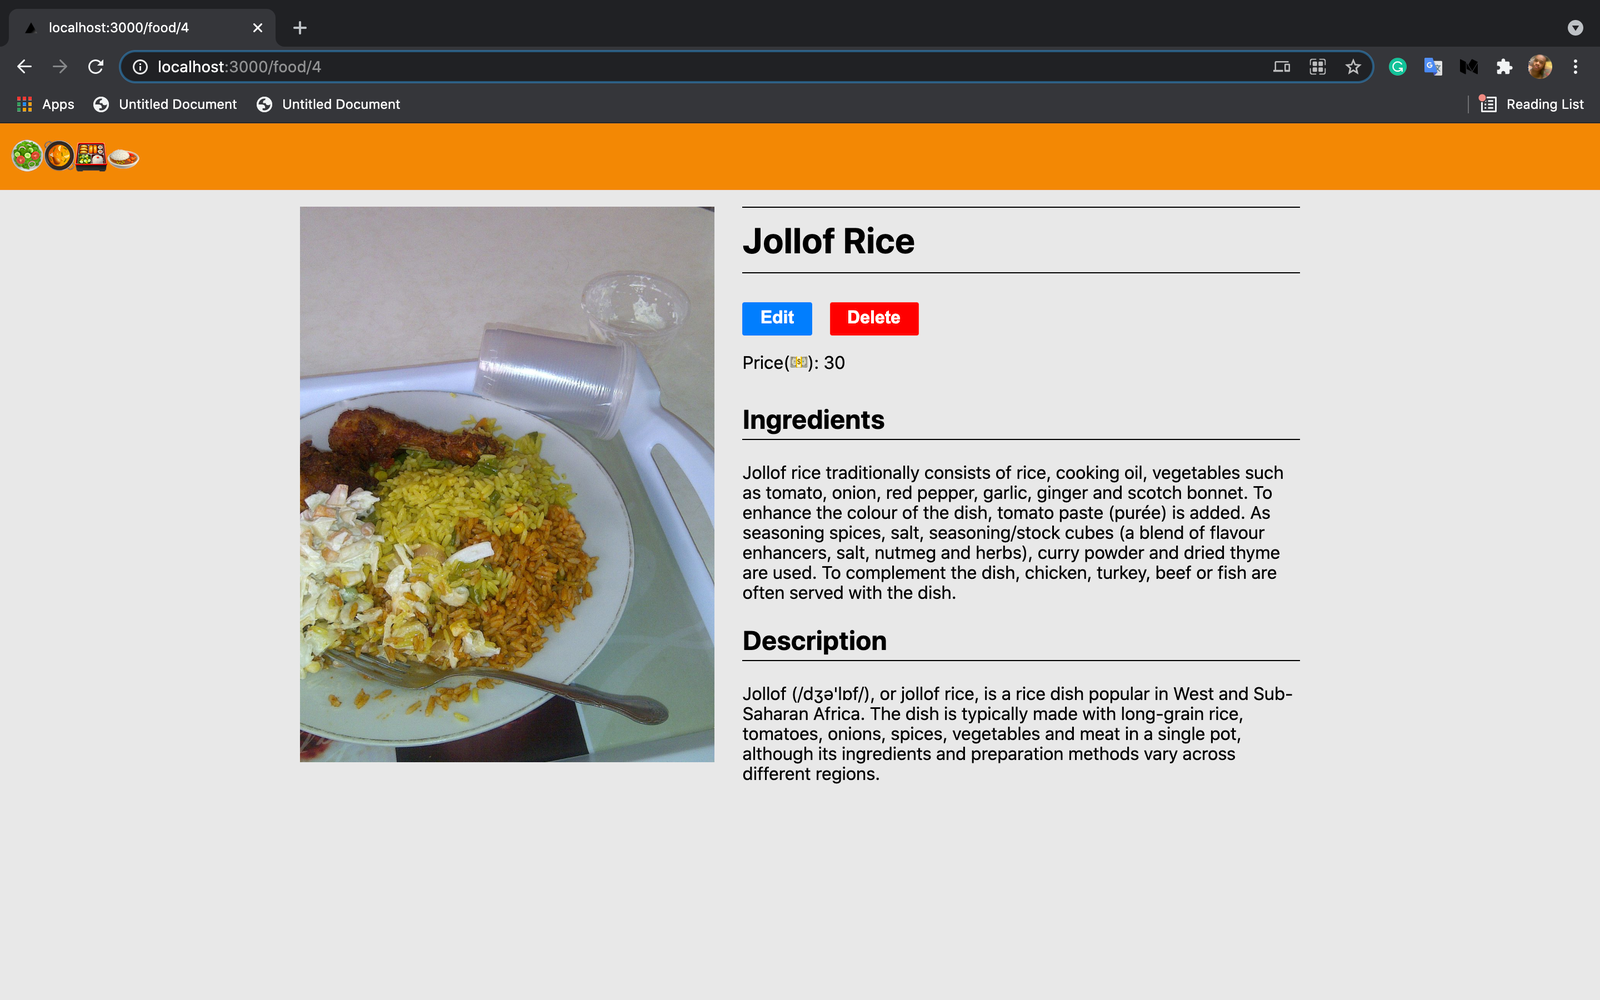 View a food recipe